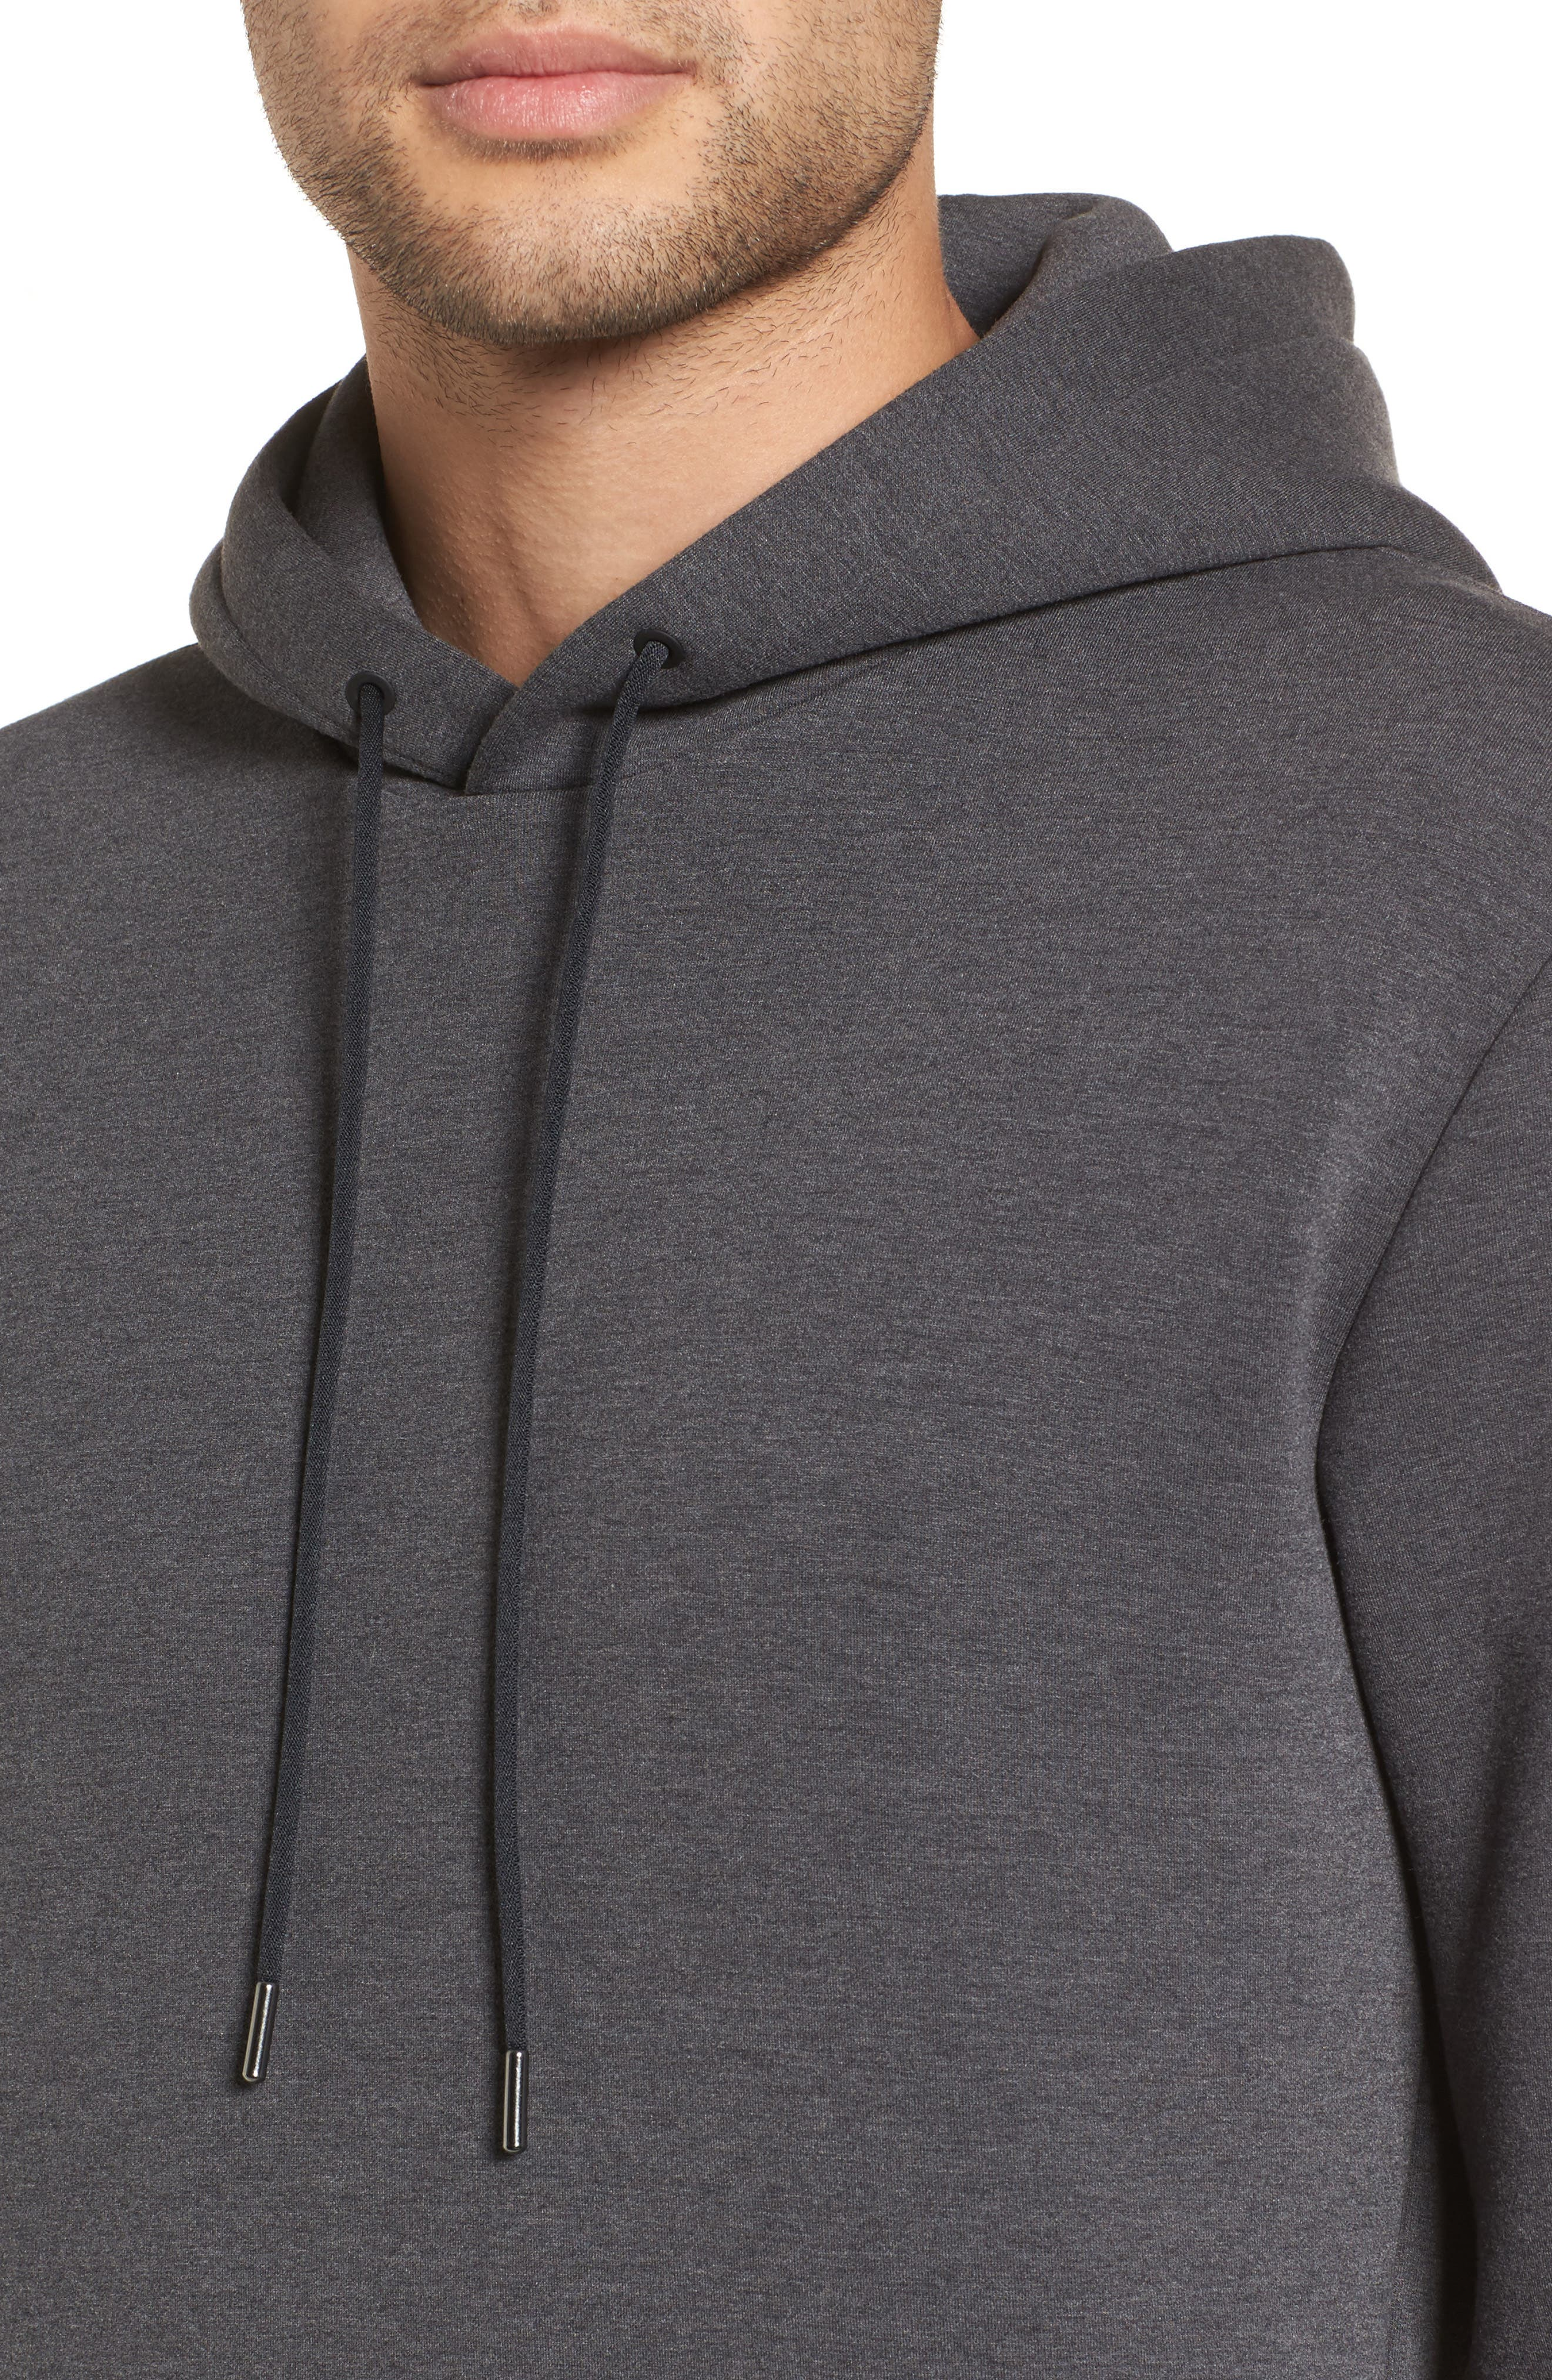 Scuba Pullover Hoodie,                             Alternate thumbnail 4, color,                             Charcoal Heather